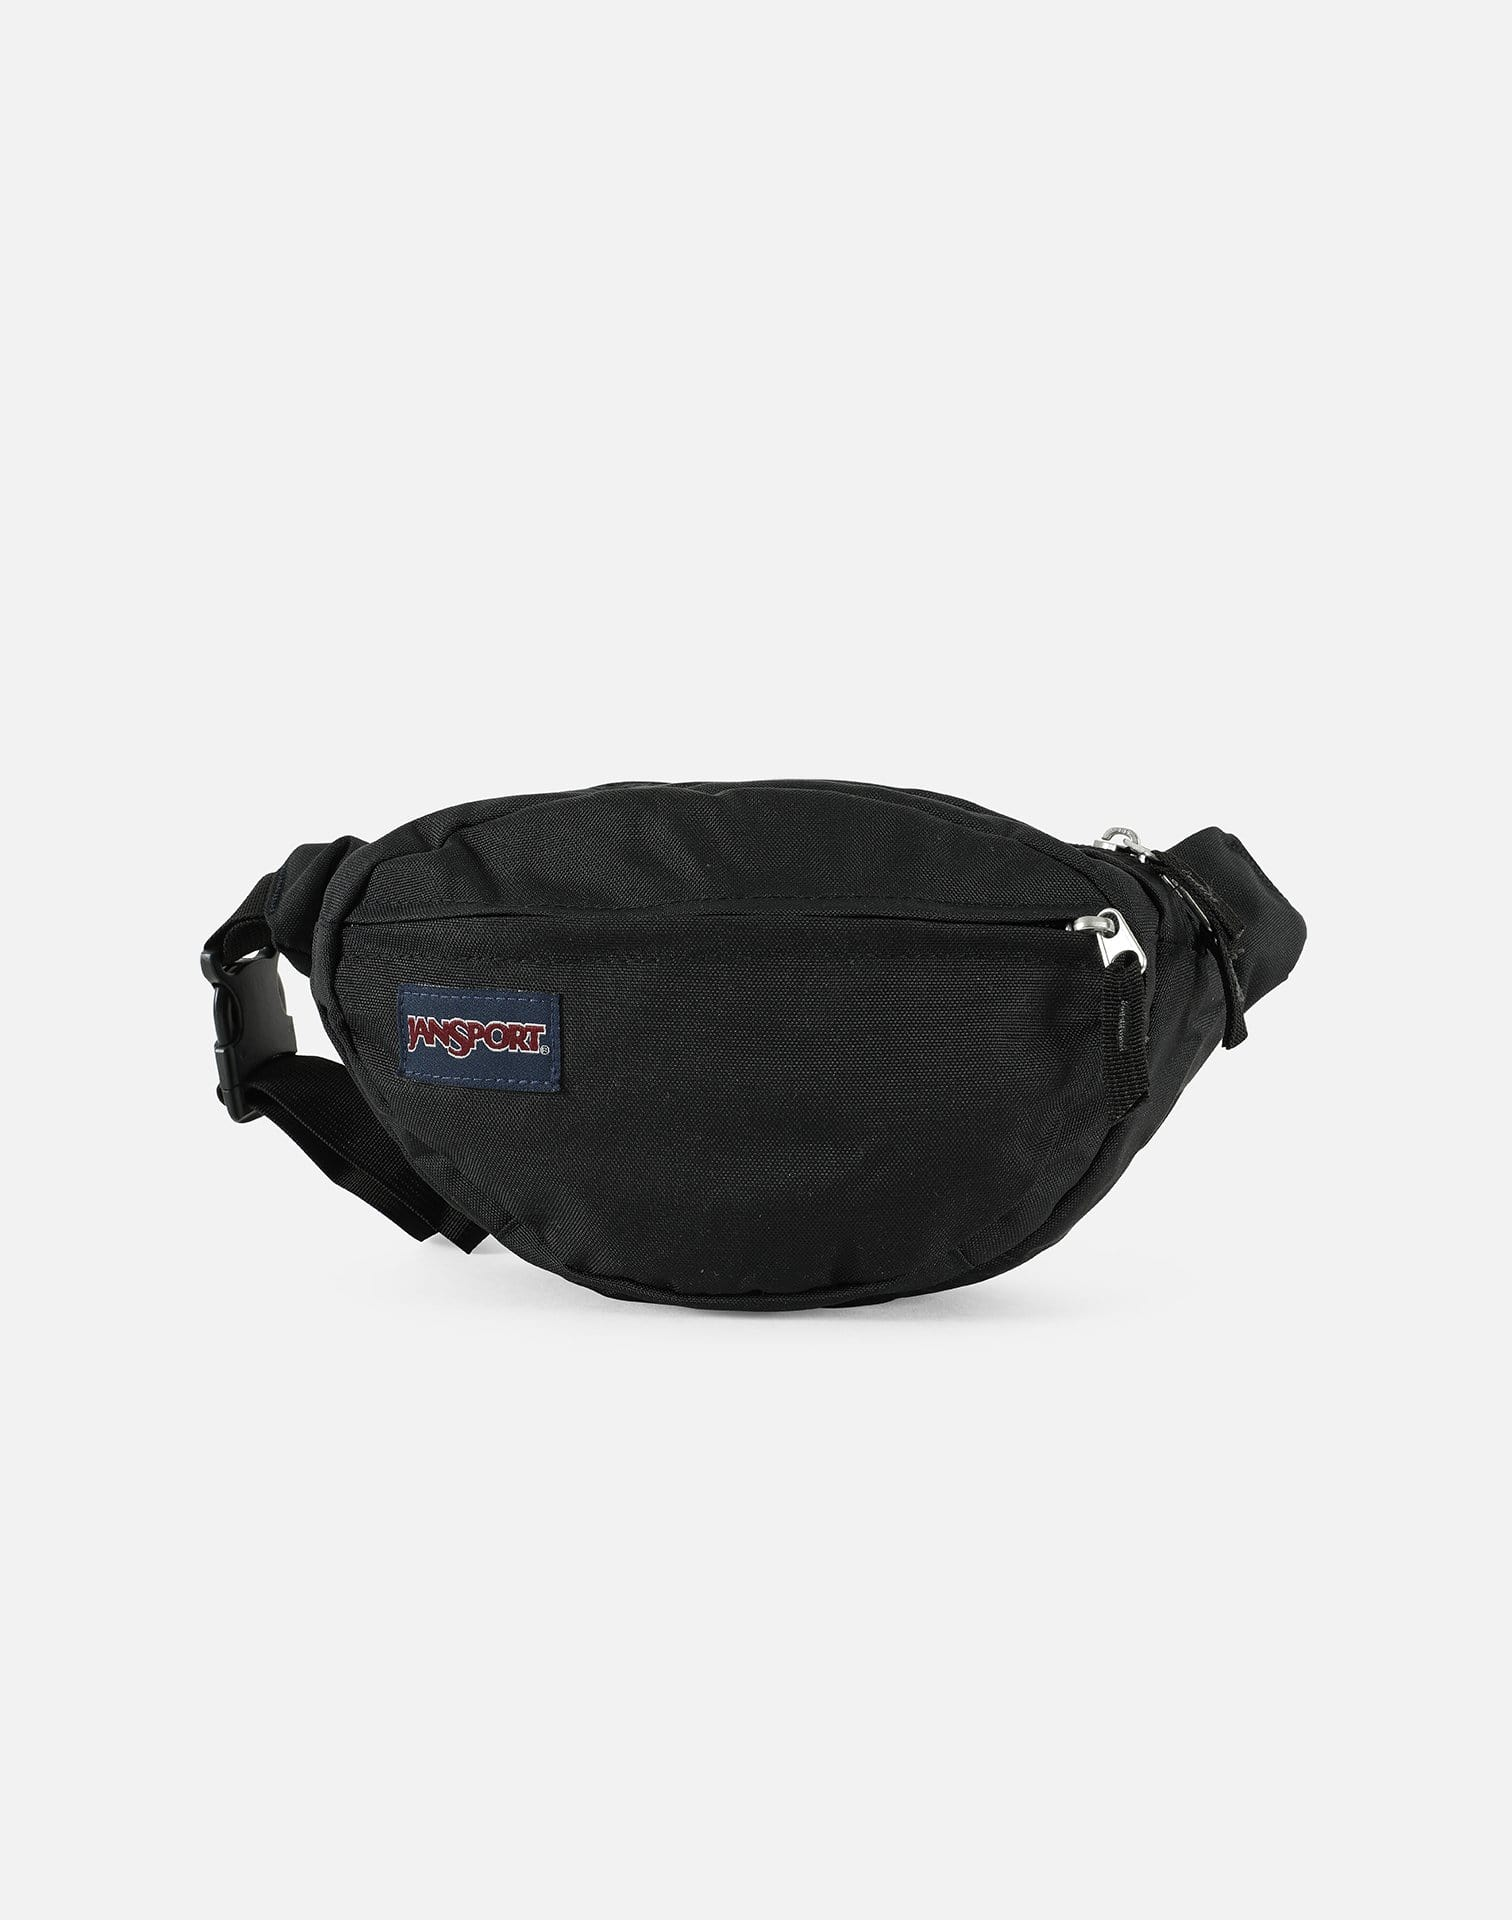 Jansport Fifth Avenue Fanny Pack